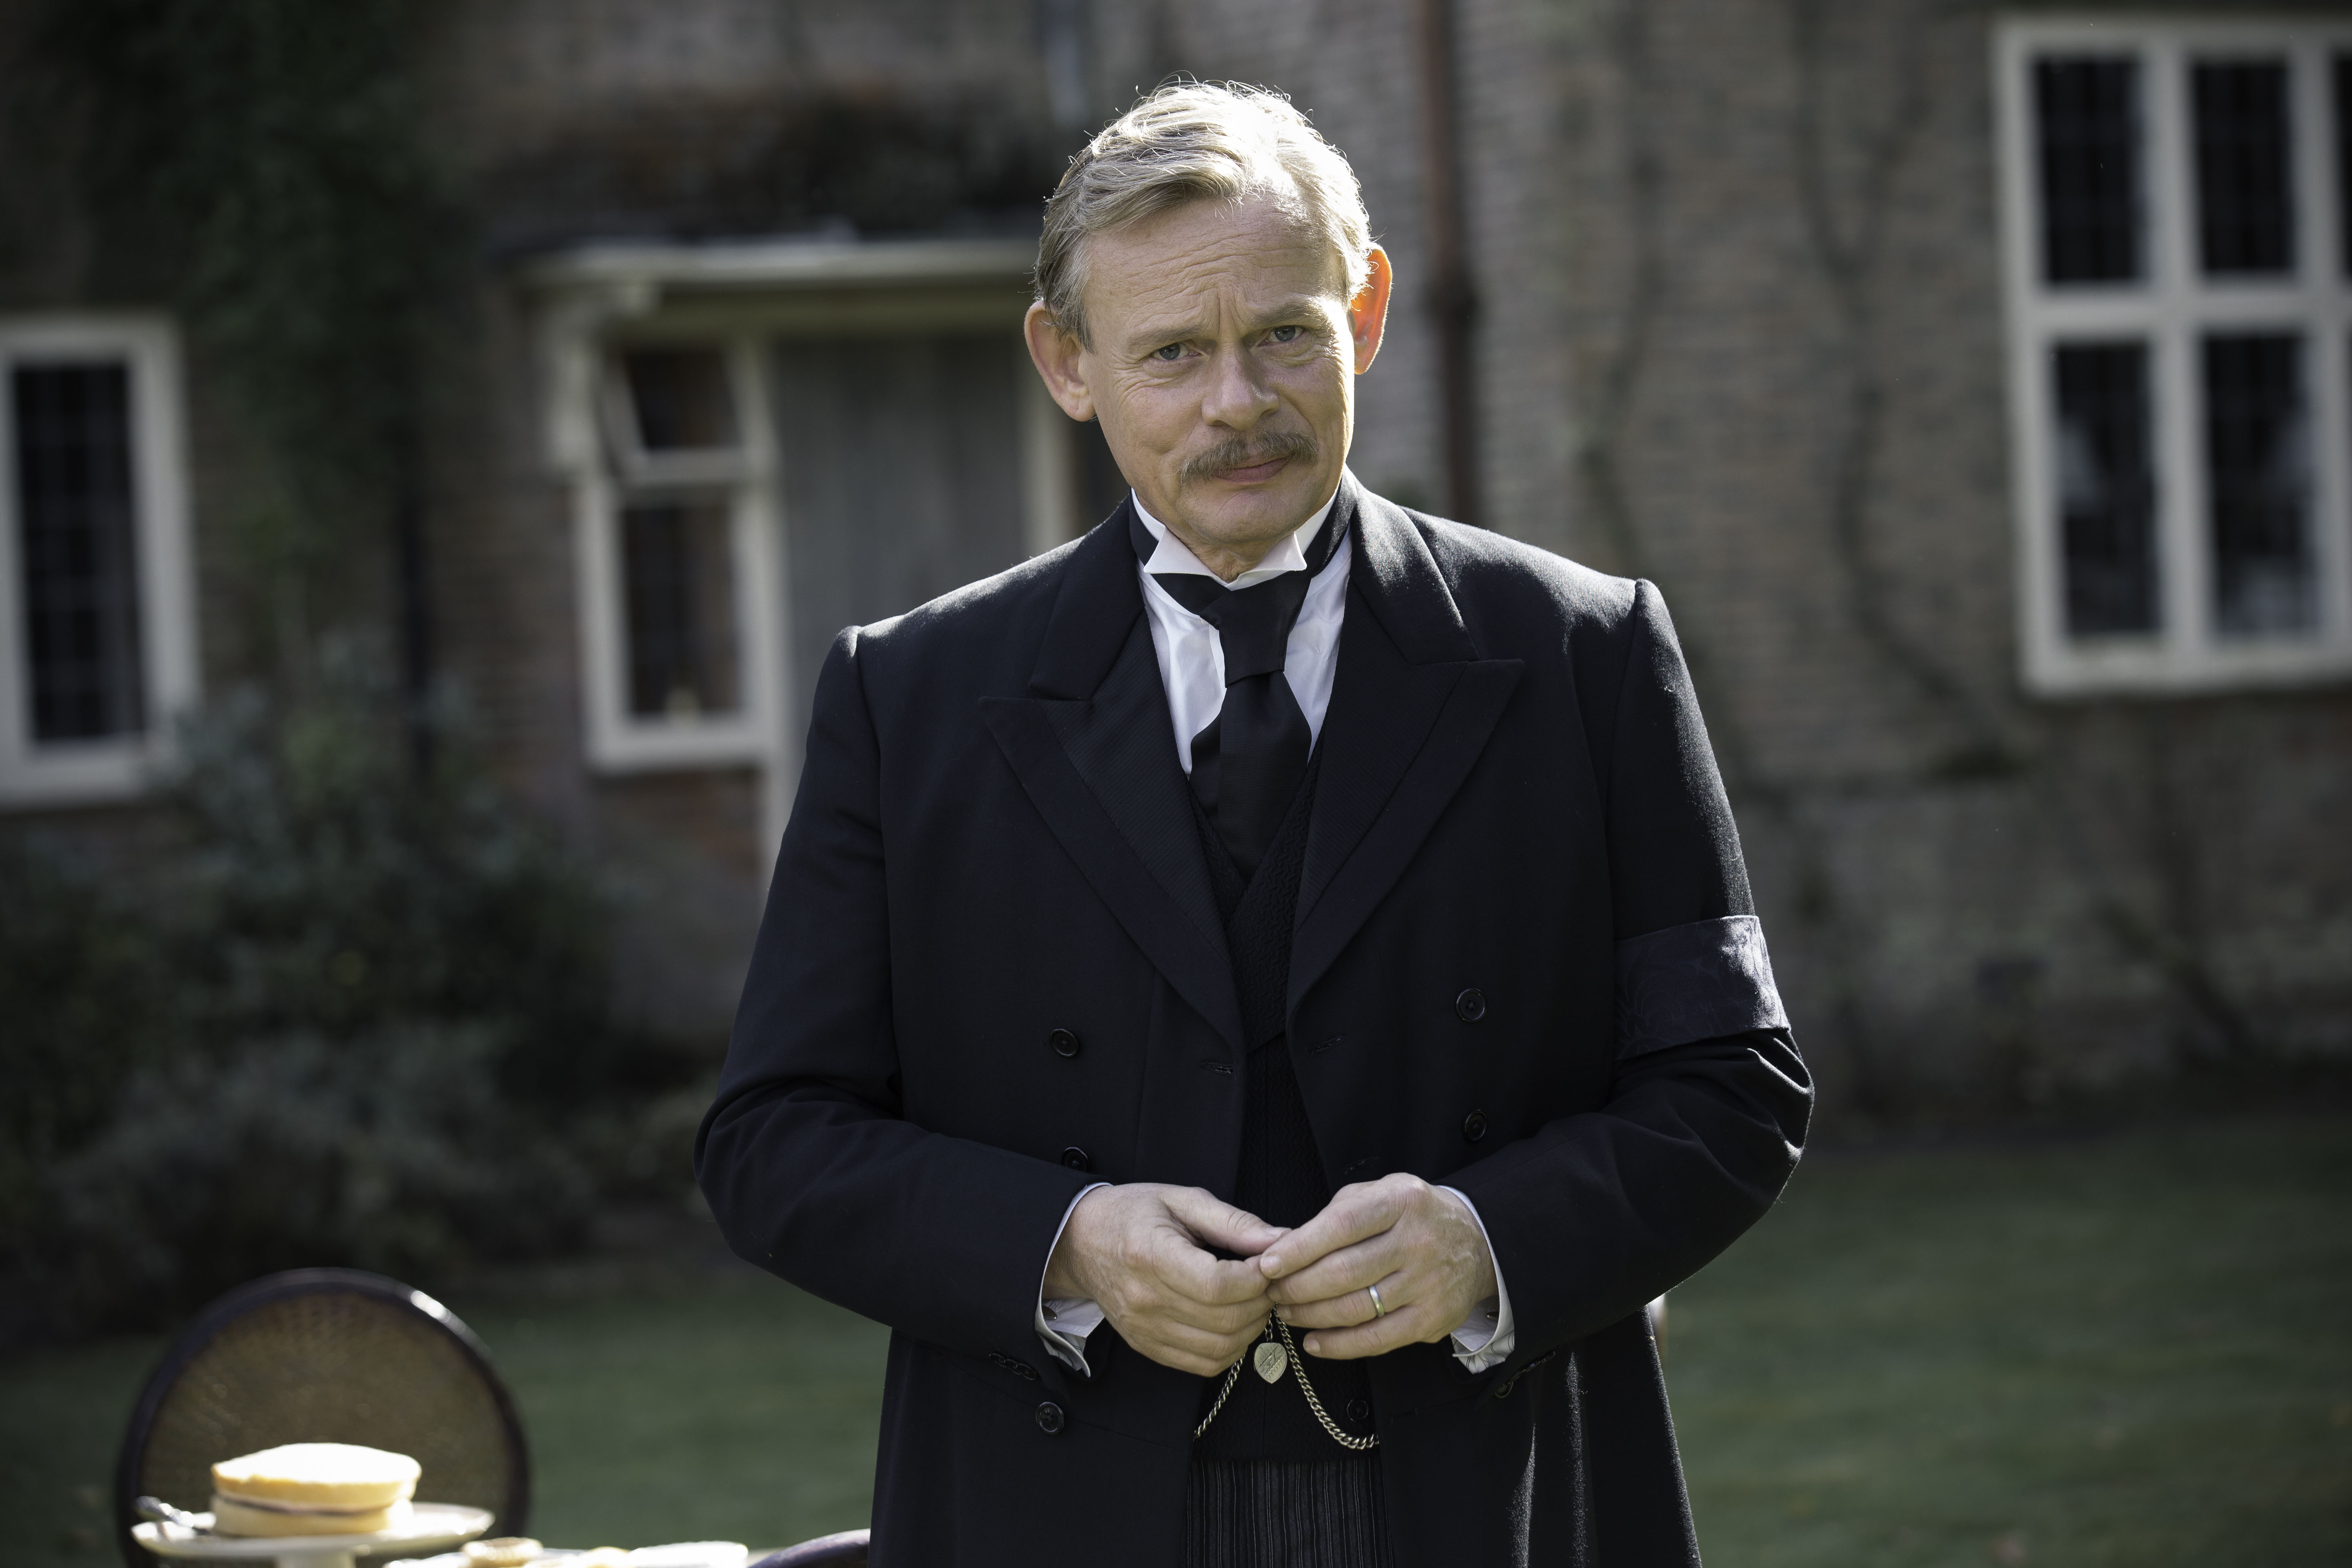 Martin Clunes stars in Arthur & Geroge (Photo Courtesy of (C) Neil Genower/Buffalo Pictures and MASTERPIECE for ITV and MASTERPIECE)